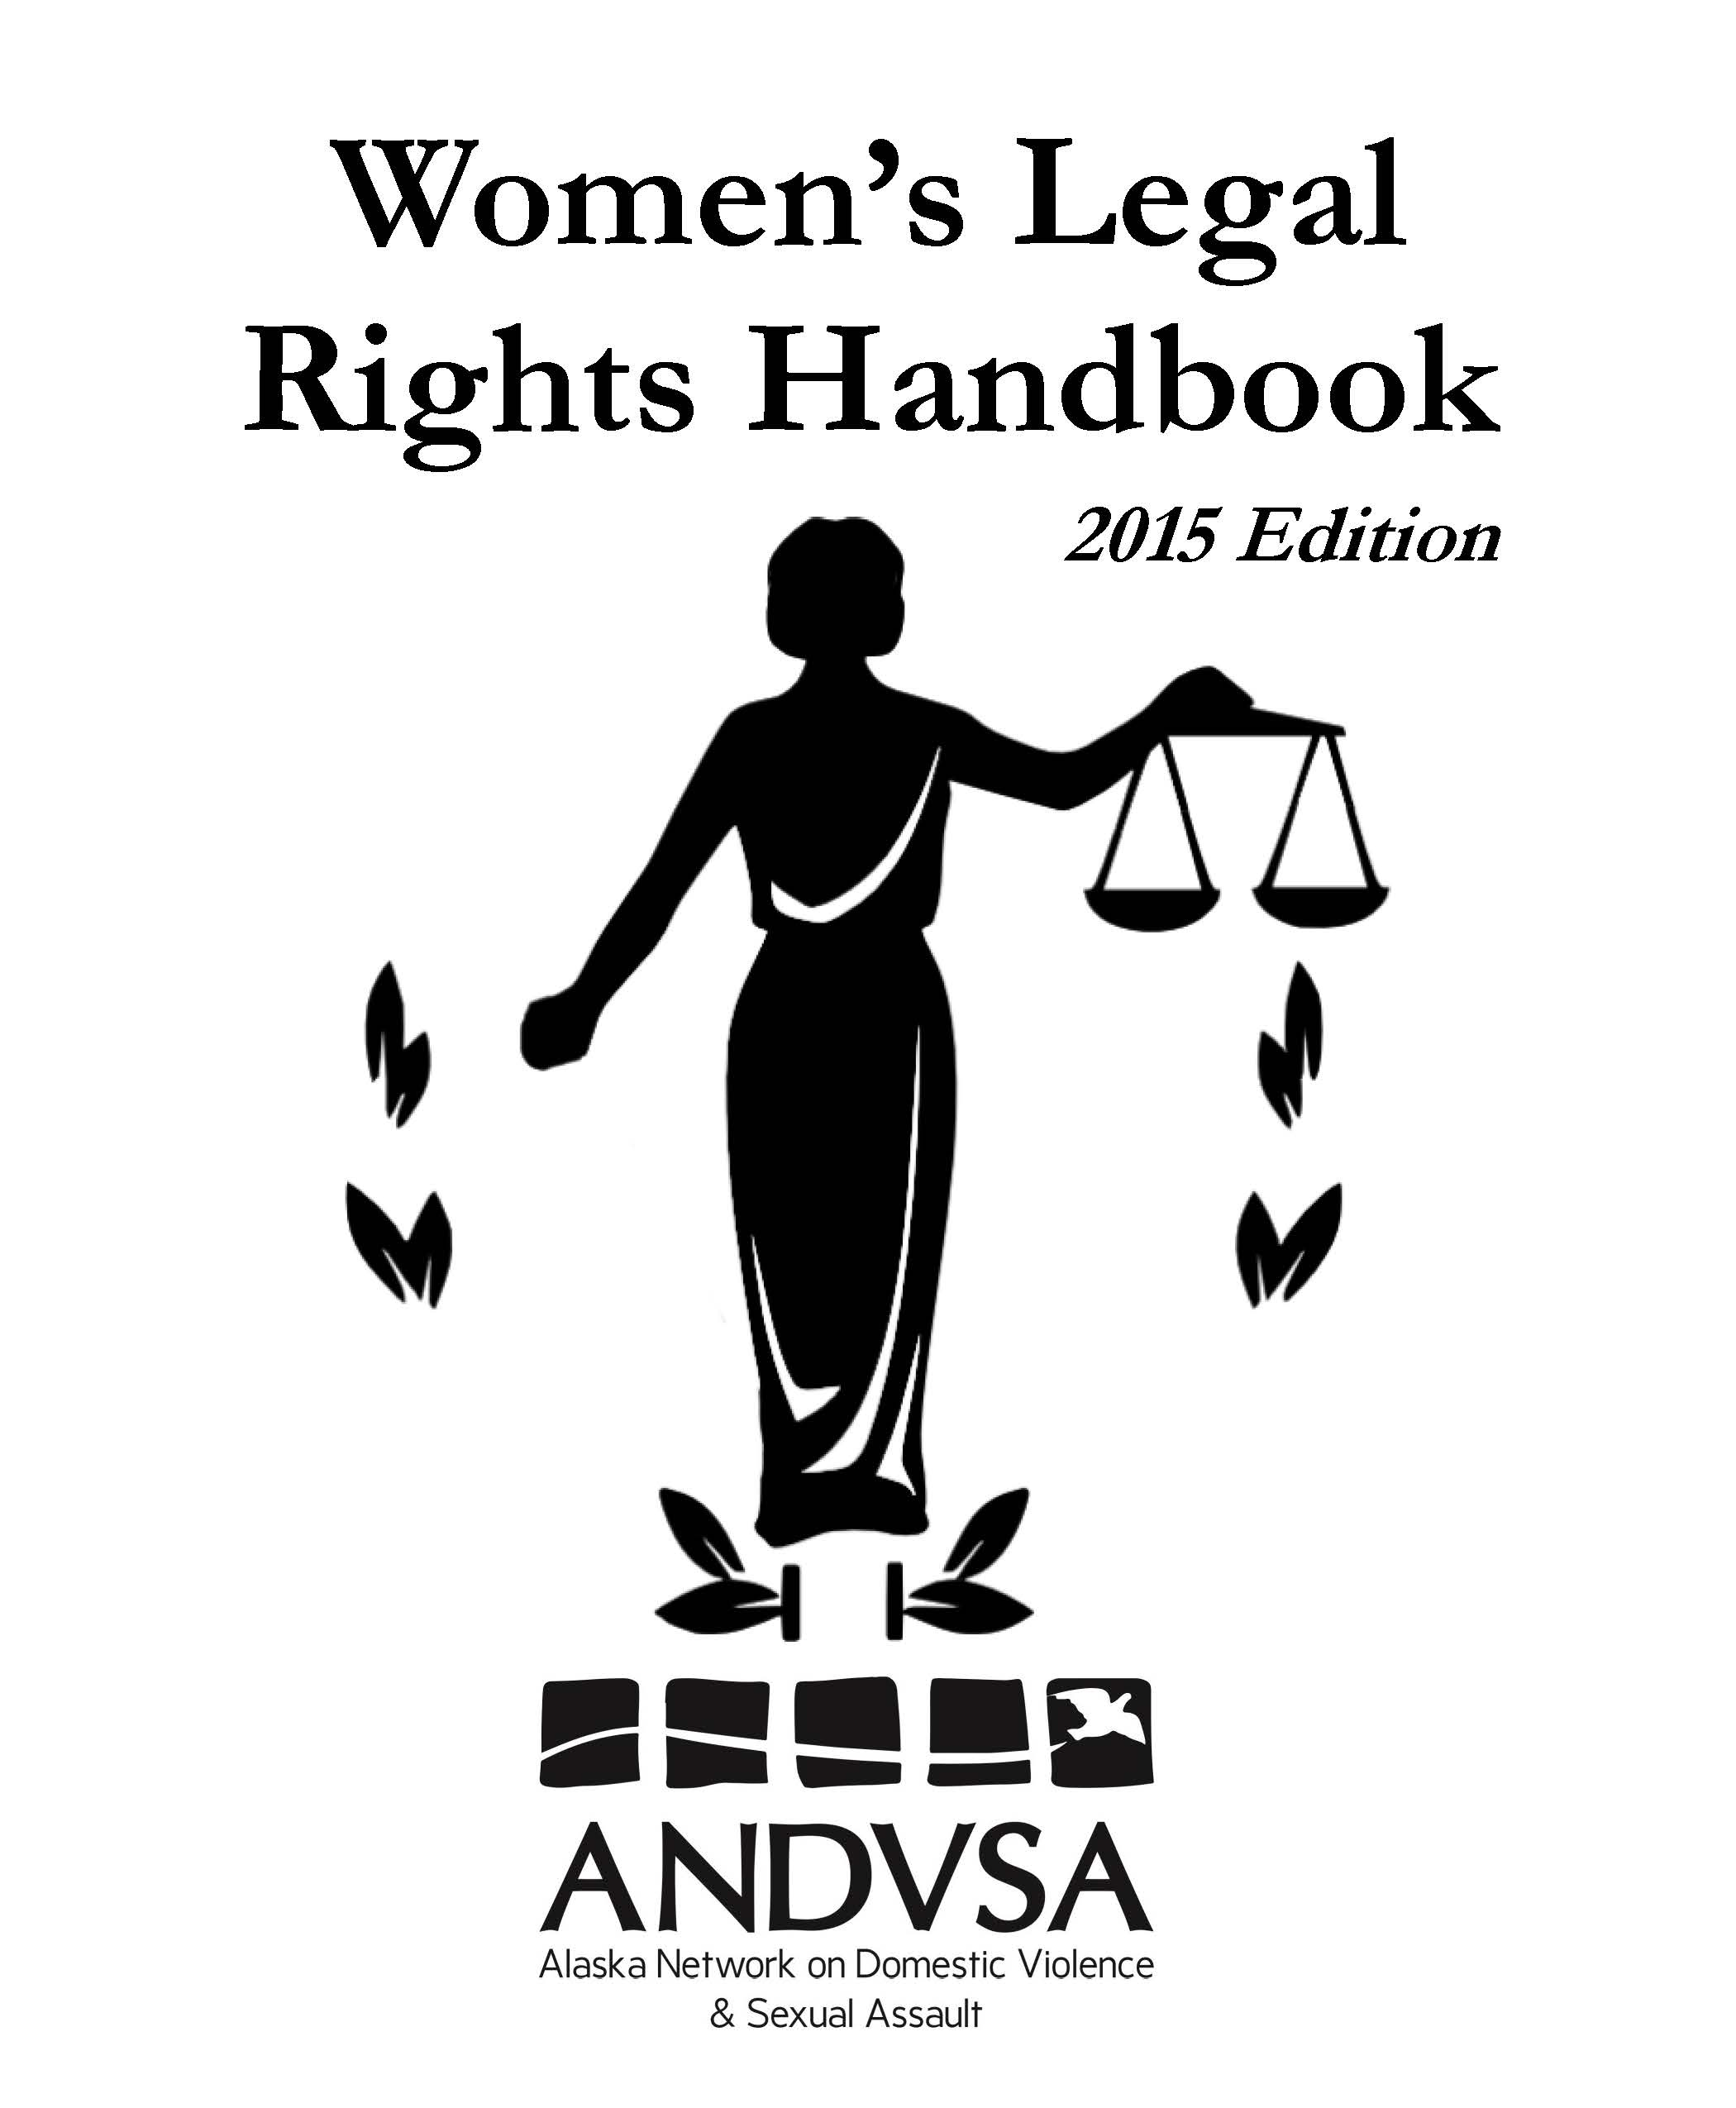 women s legal rights handbook gets update publishes online the women s legal rights handbook is available online and at women s shelters and advocacy organizations across